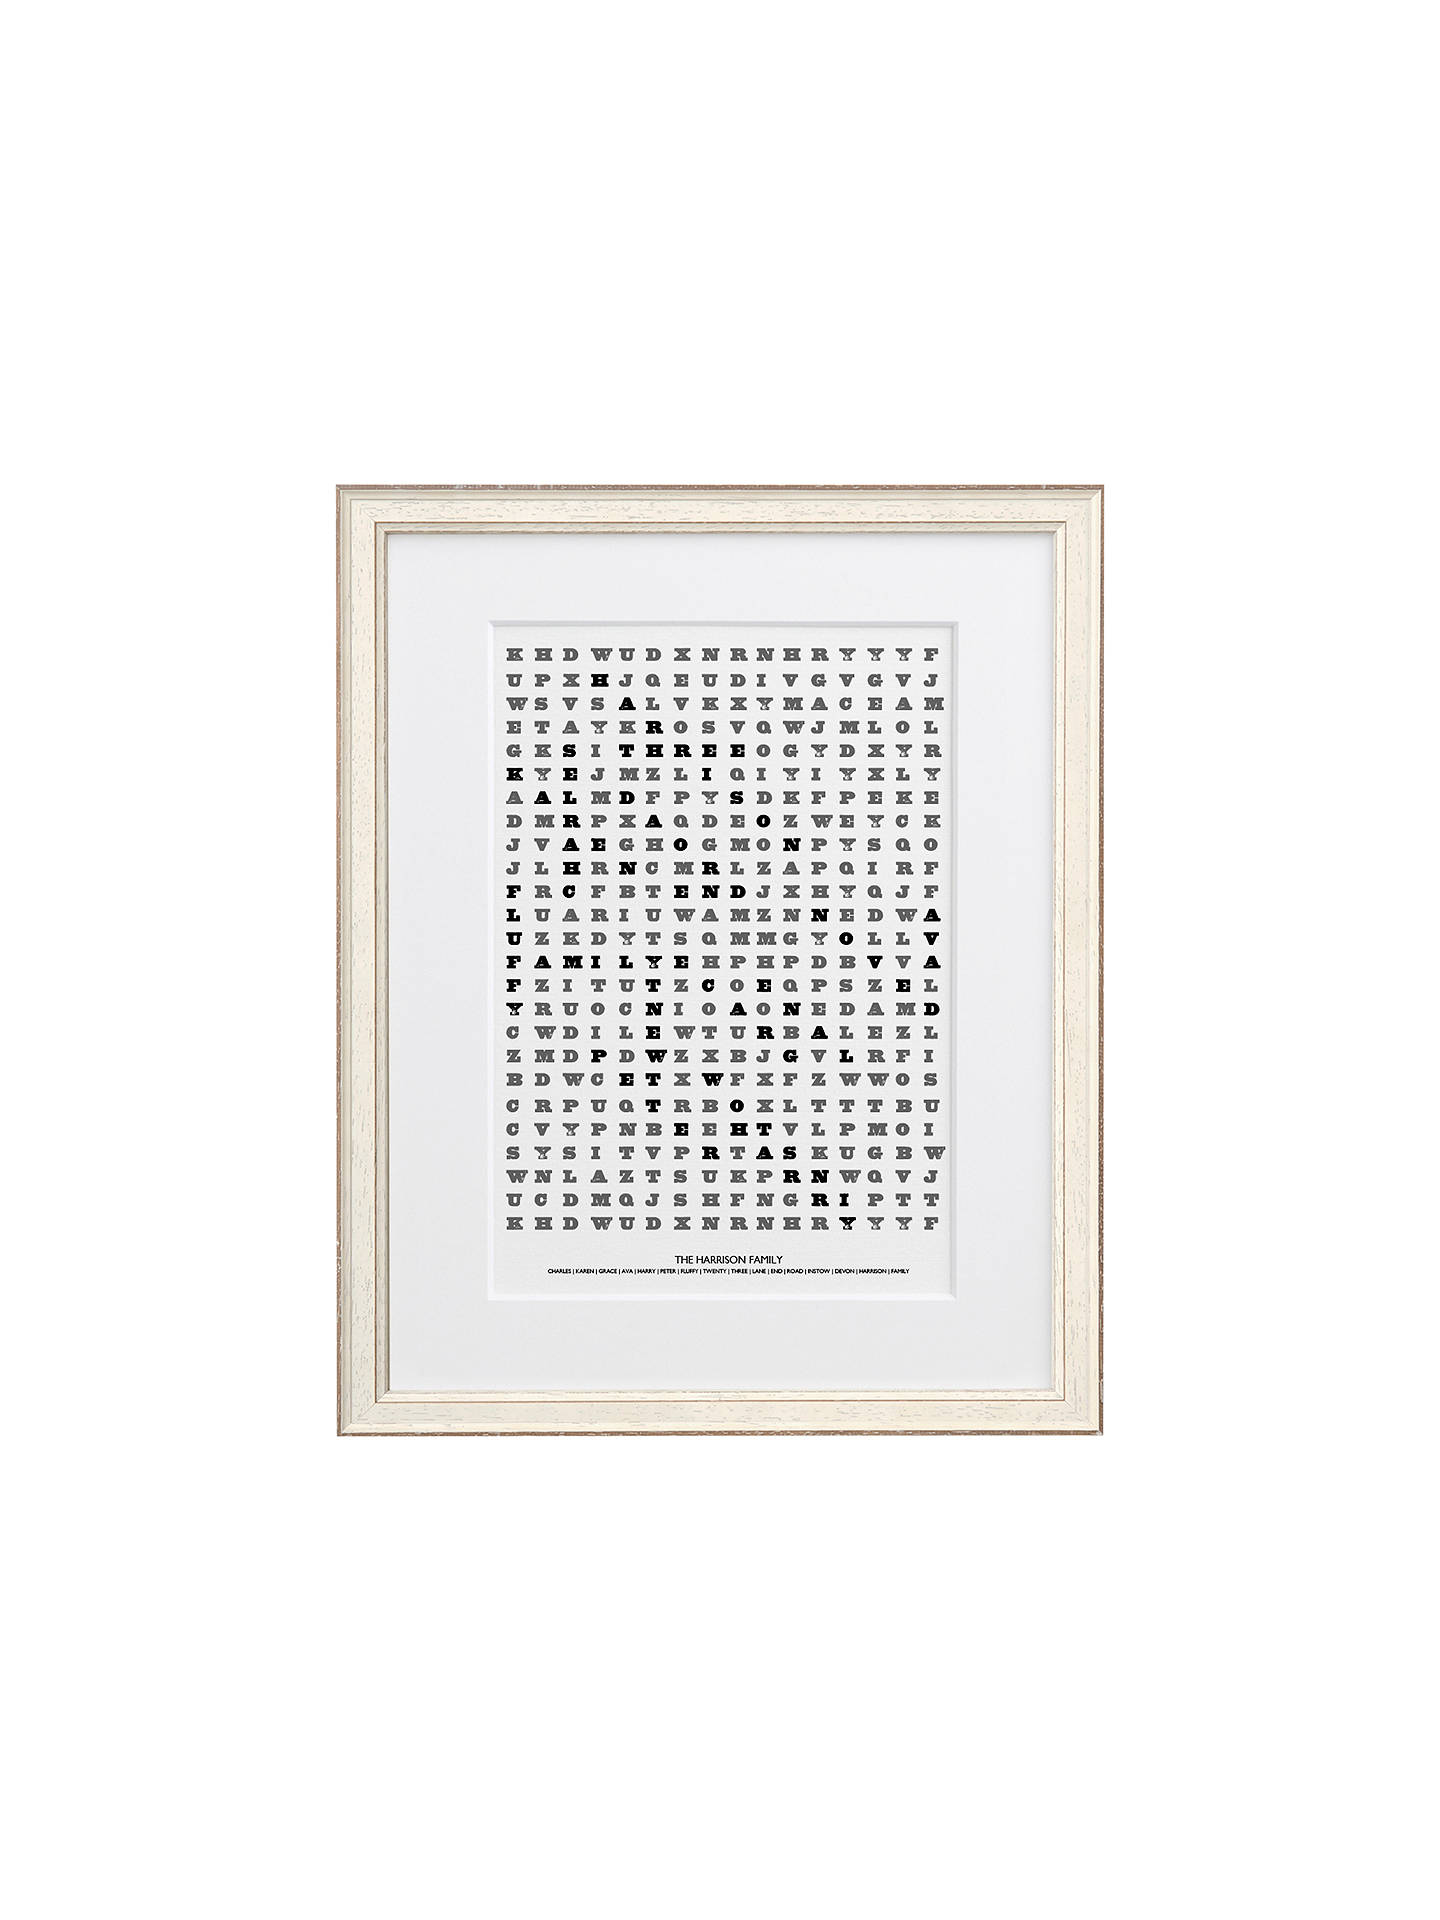 Letterfest Personalised Family Word Search Framed Print, 44 8 x 56 8cm,  White frame